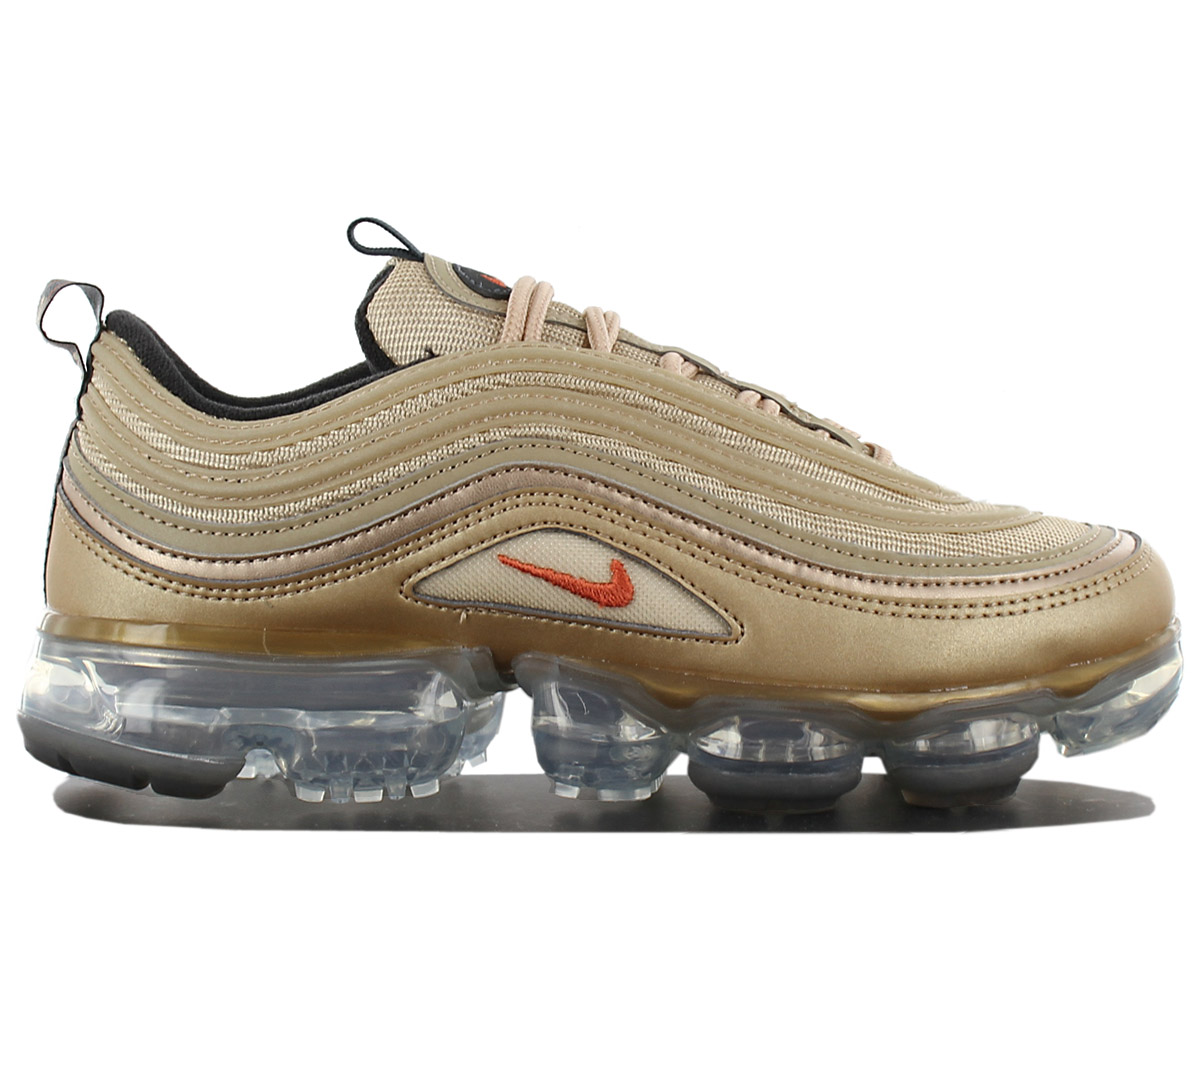 finest selection deeee 8c10a Details about Nike Air Vapormax 97 Women's Trainers Shoes Casual Max  AO4542-902 New